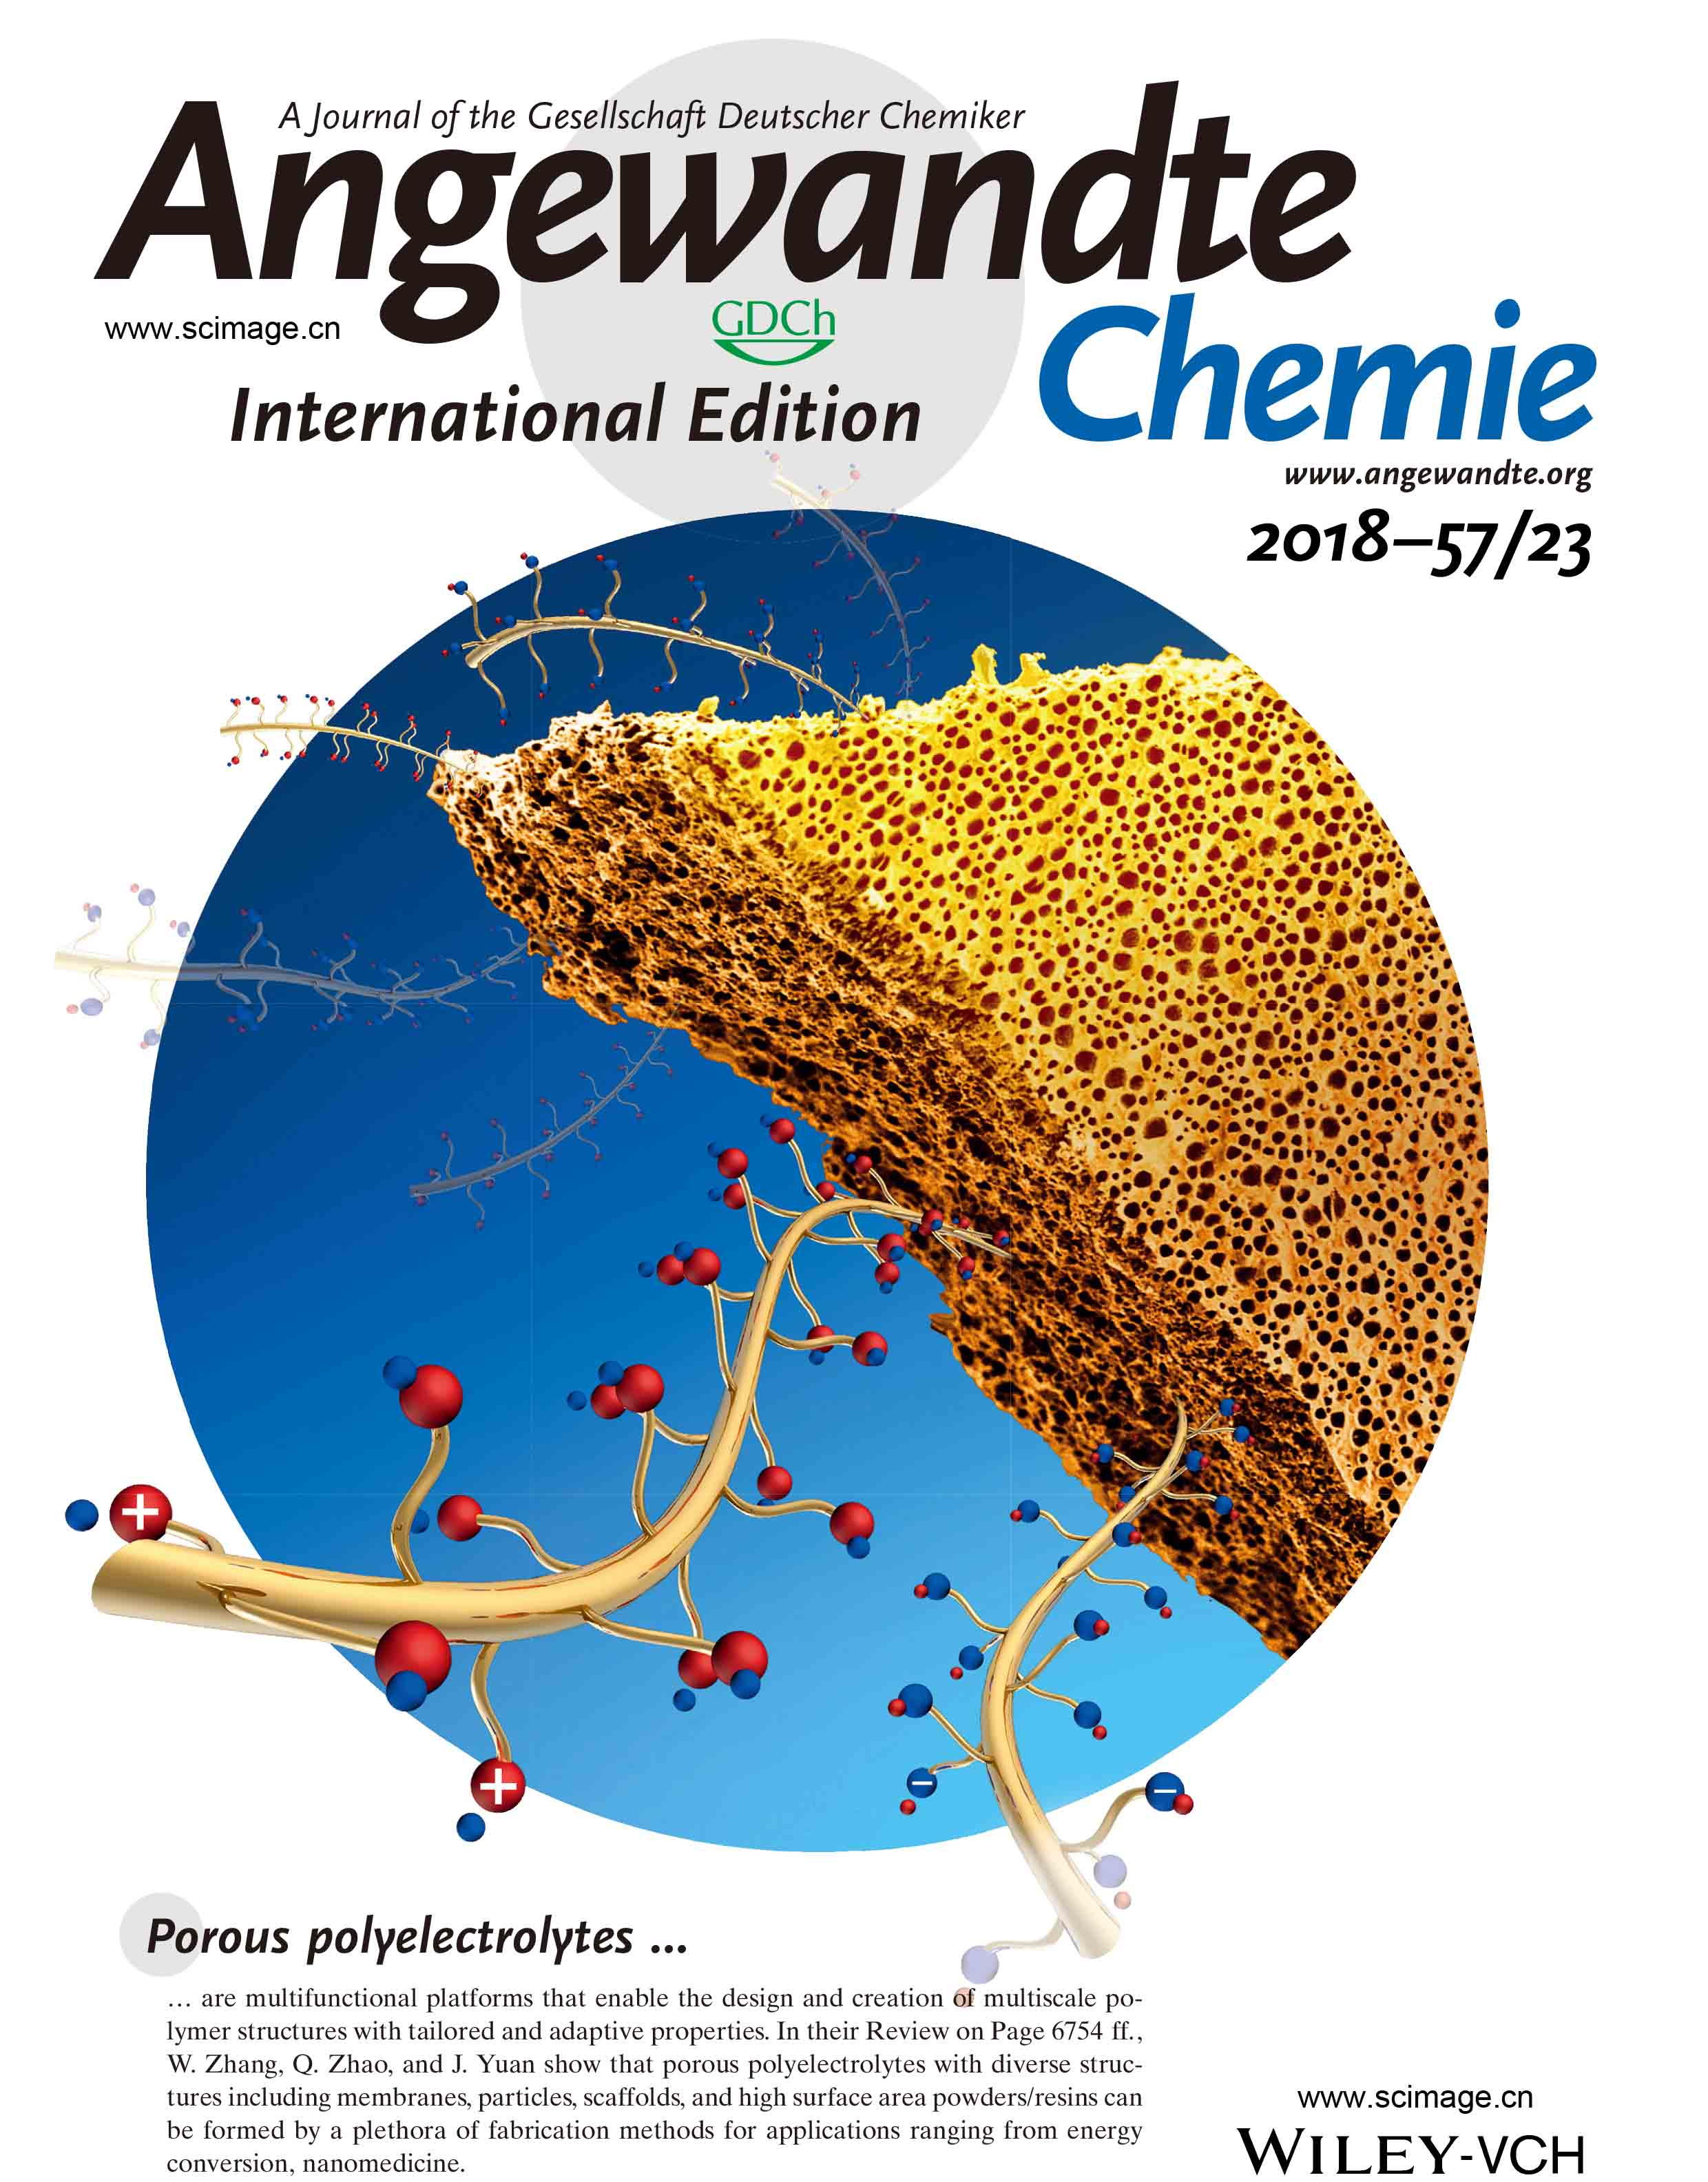 Porous Polyelectrolytes: The Interplay of Charge and Pores for New Functionalities